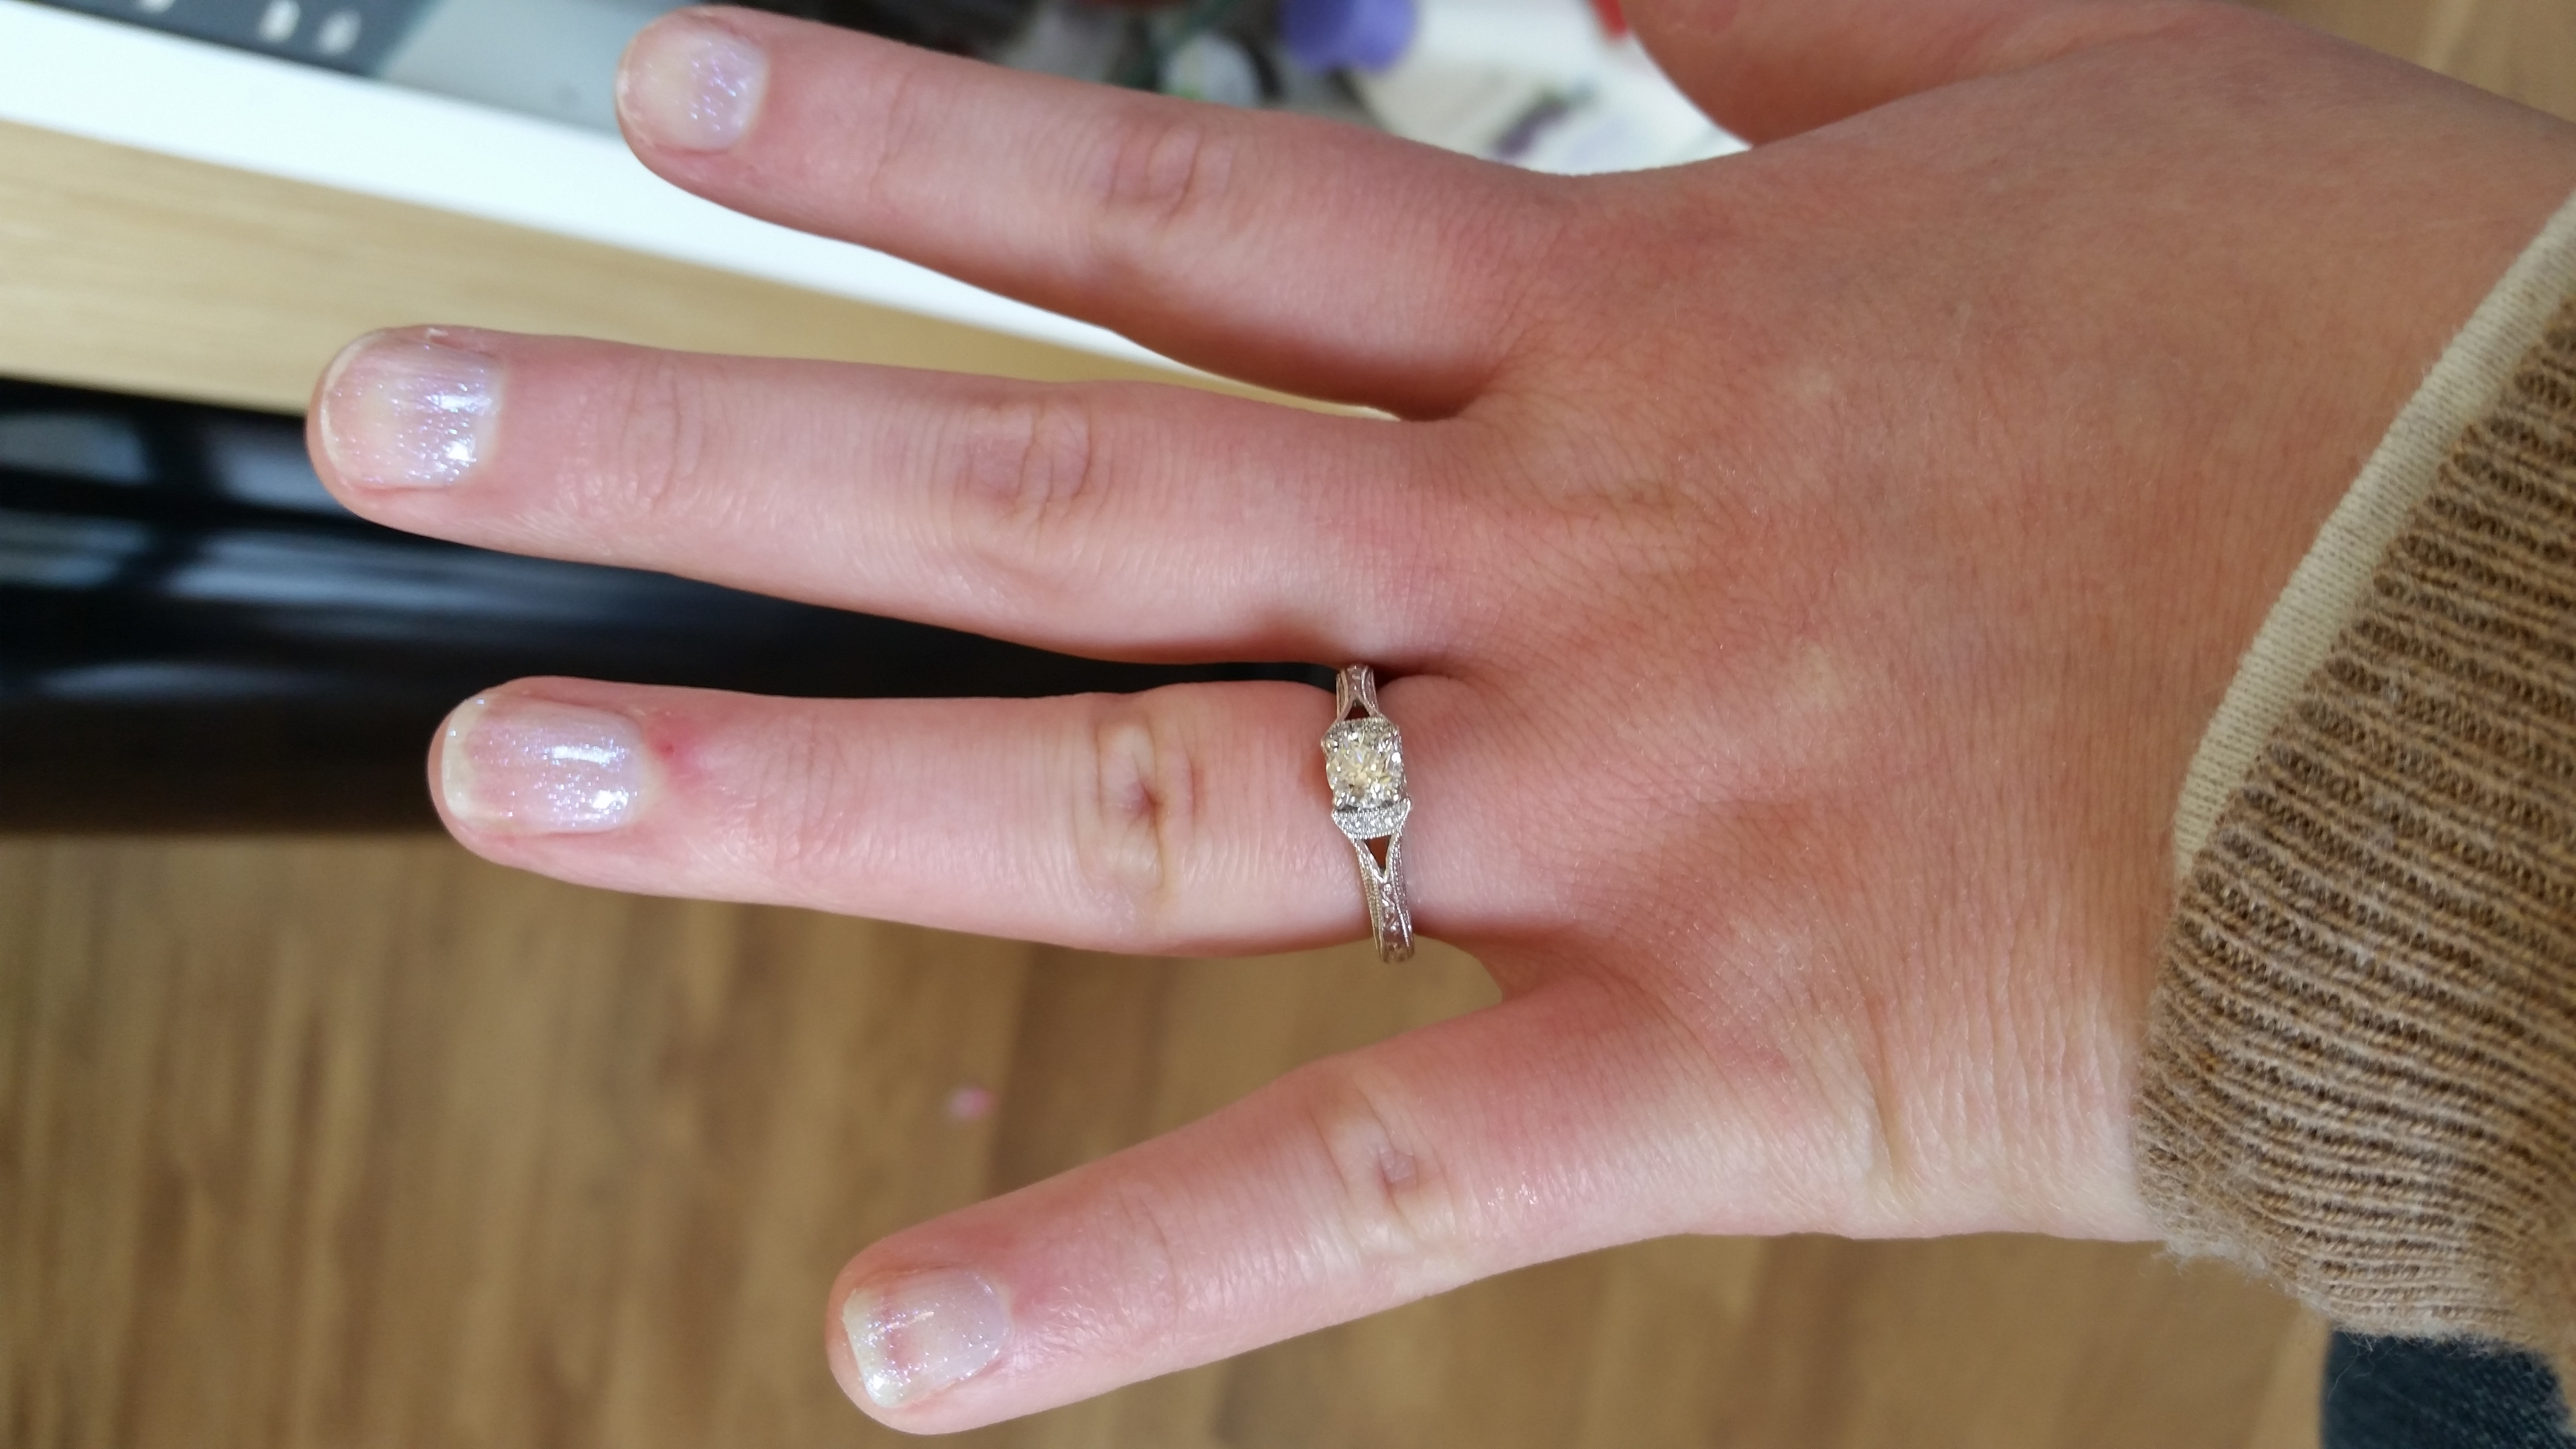 Show Off Your Rings Here! - Page 32 — The Knot